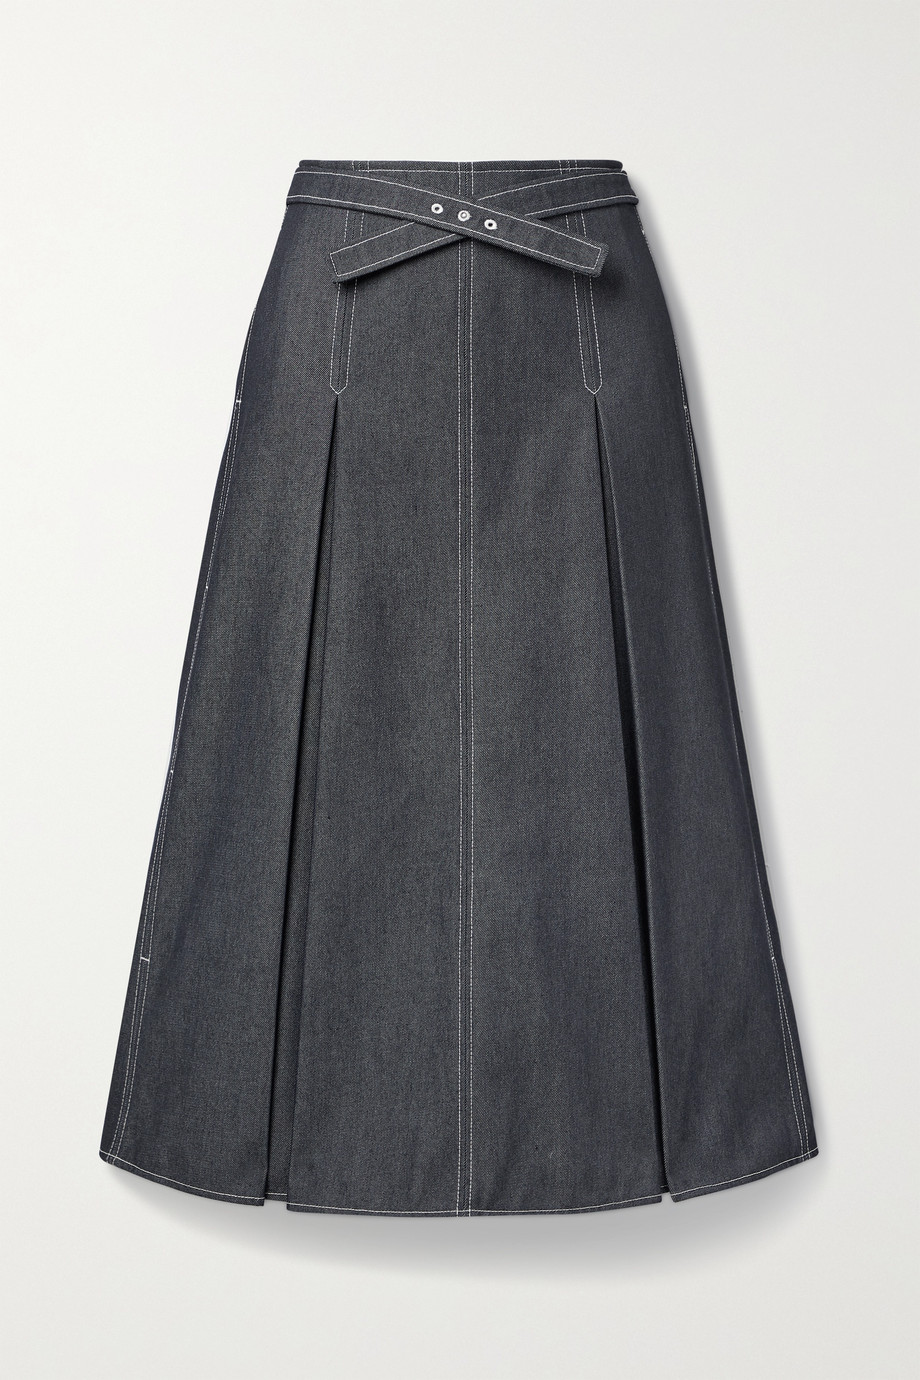 Jason Wu Belted pleated denim midi skirt